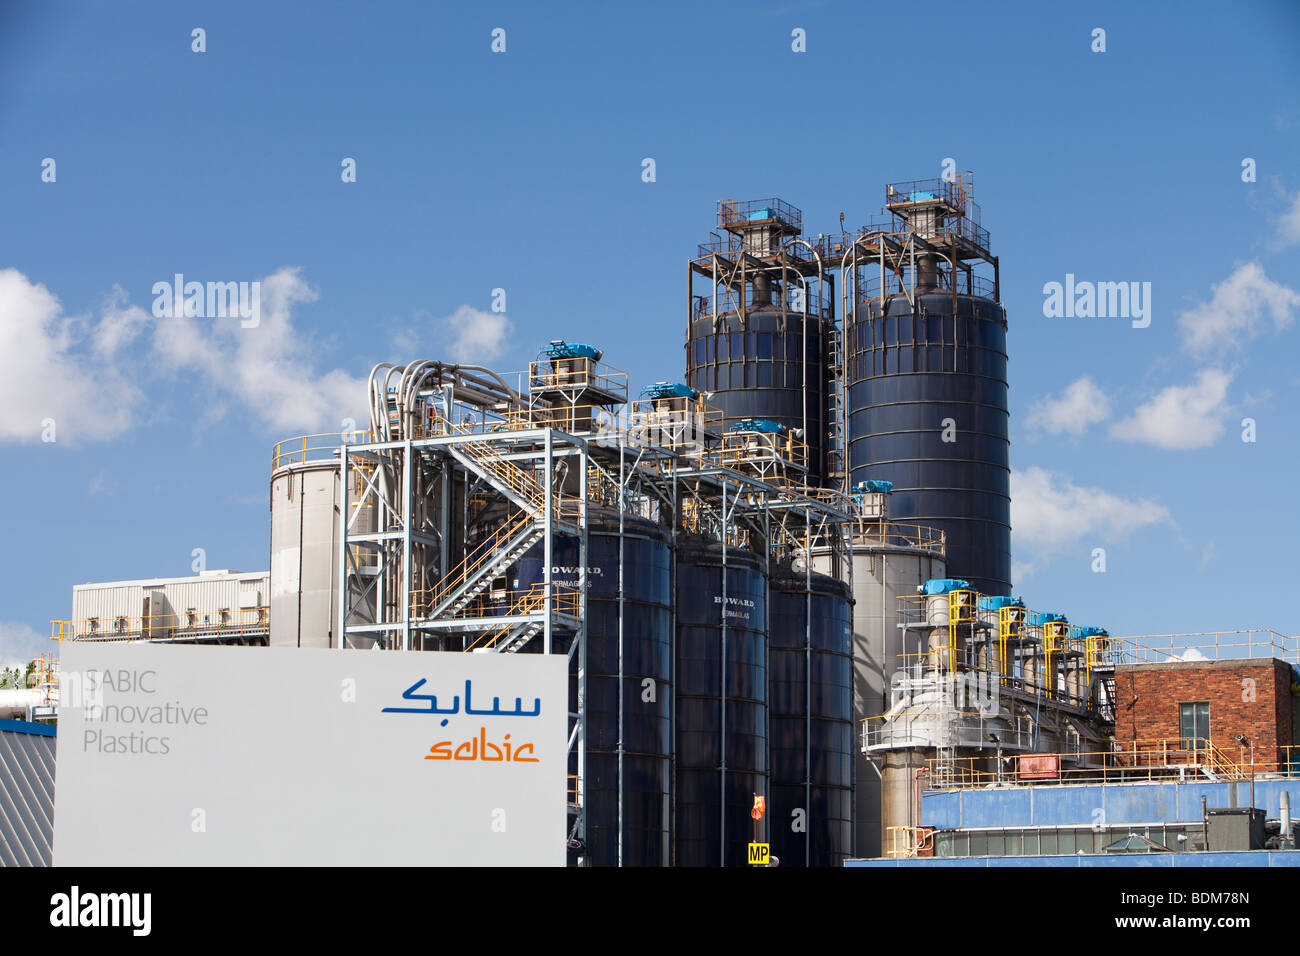 The Sabic plastics factory on the industrial complext at